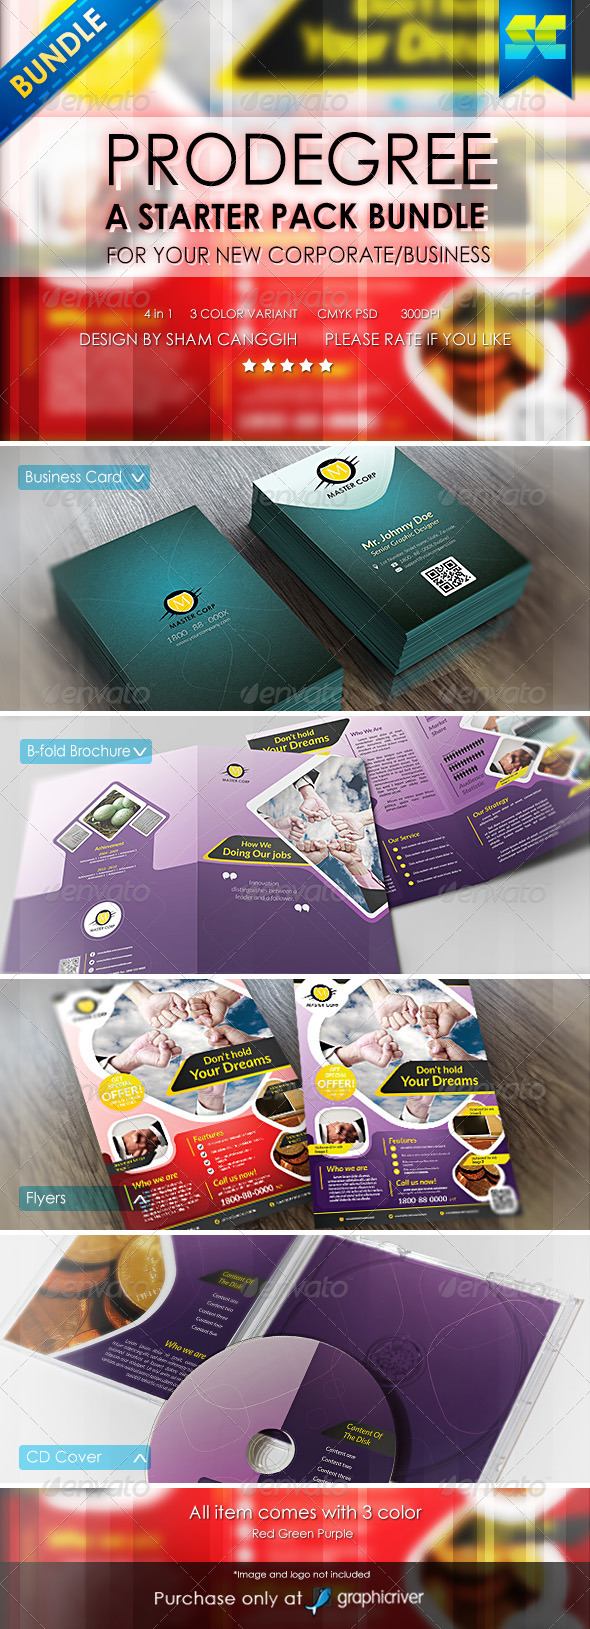 GraphicRiver Prodegree Corporate Business Starter Pack Bundle 6382526